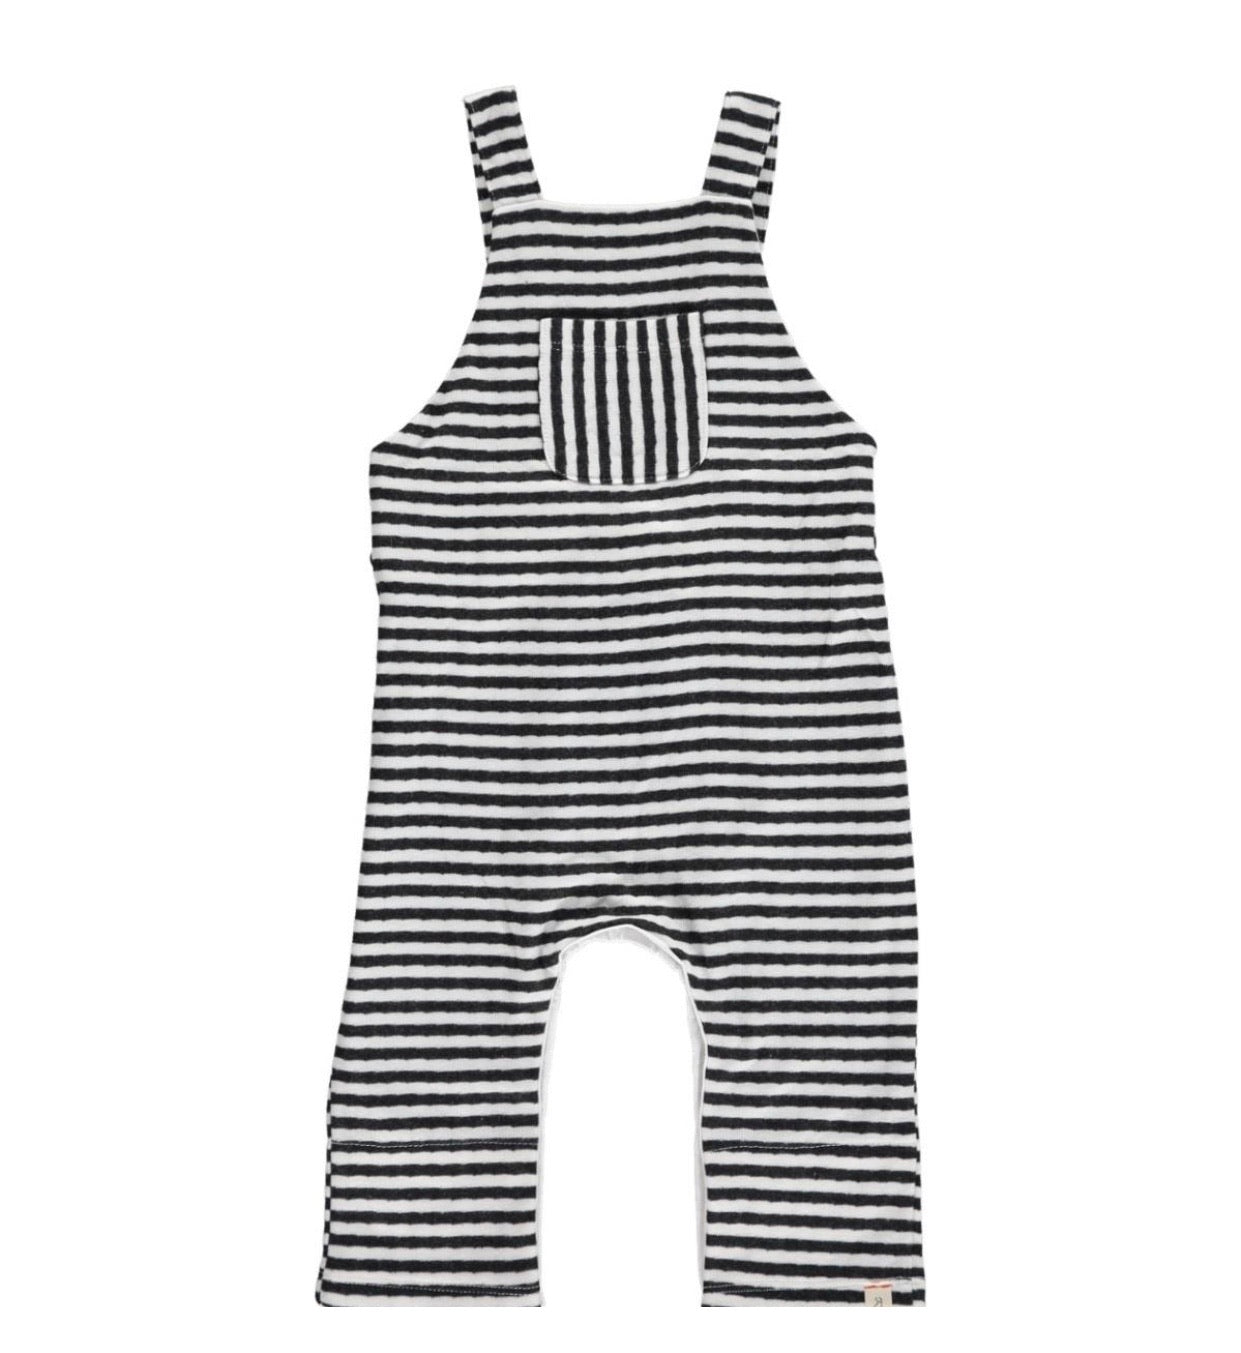 Baby boy stripe jersey overalls - brown or black stripe